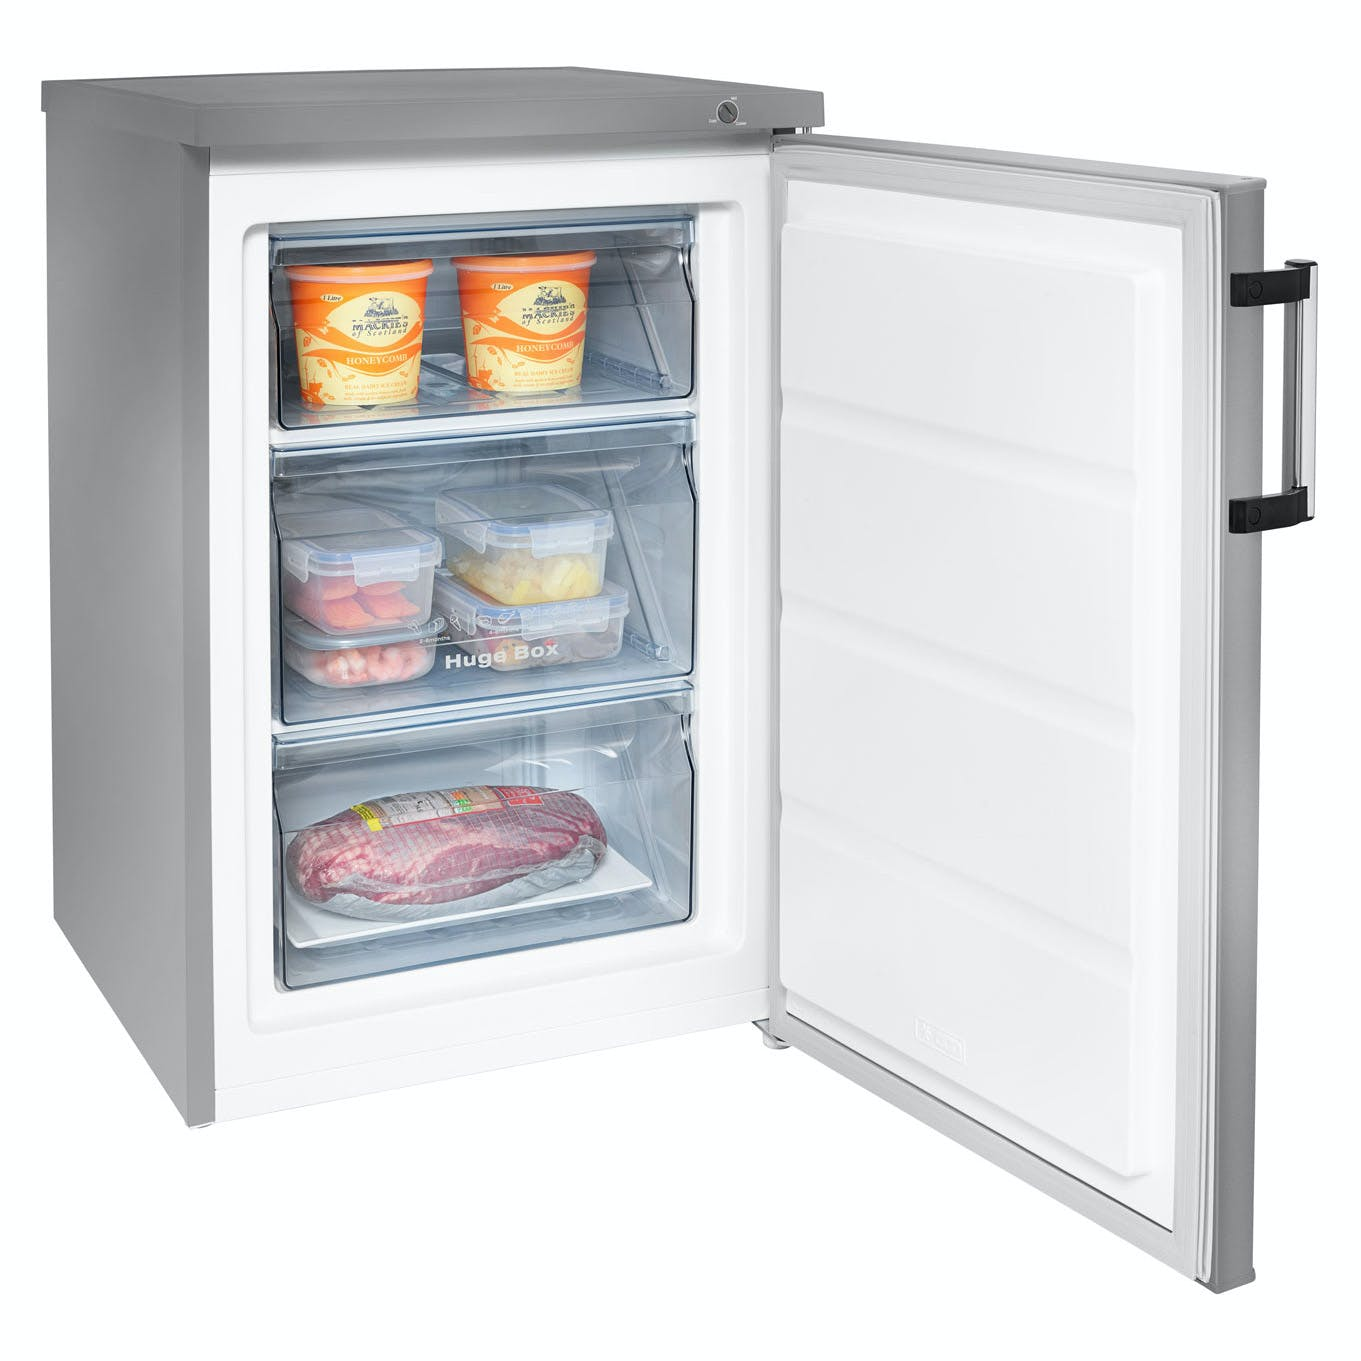 Hisense Fv105d4bc2 55cm Freezer In Stainless Steel 0 85m A